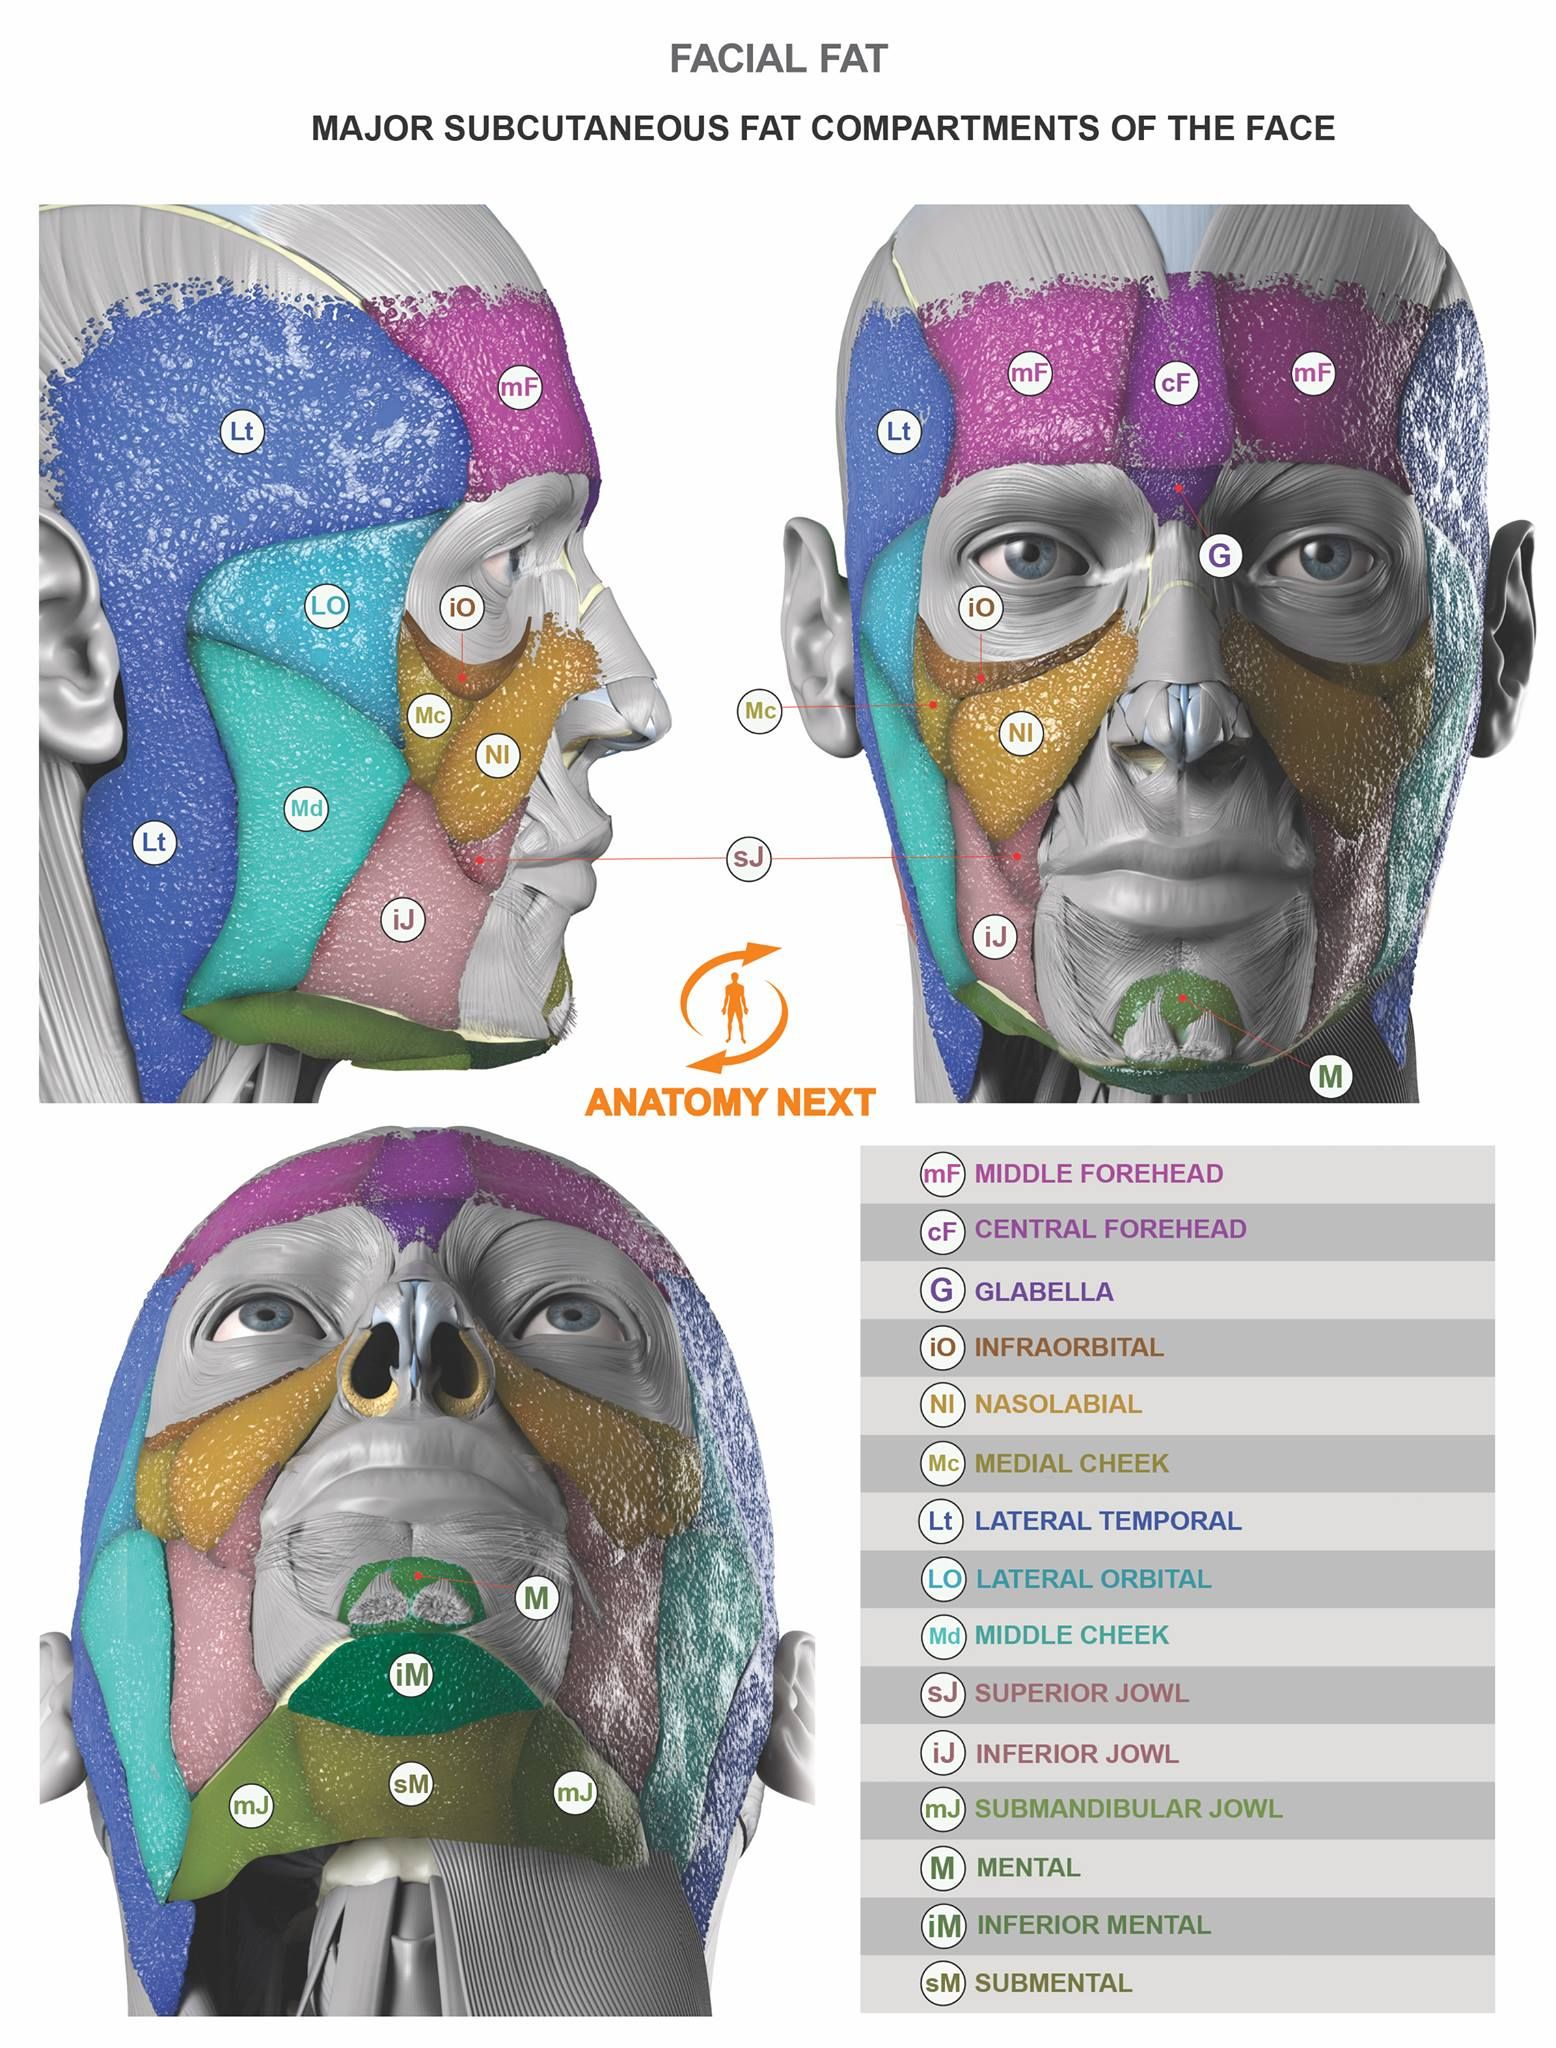 Facial fat www.anatomynext.com | Anatomy Reference (2D/3D ...